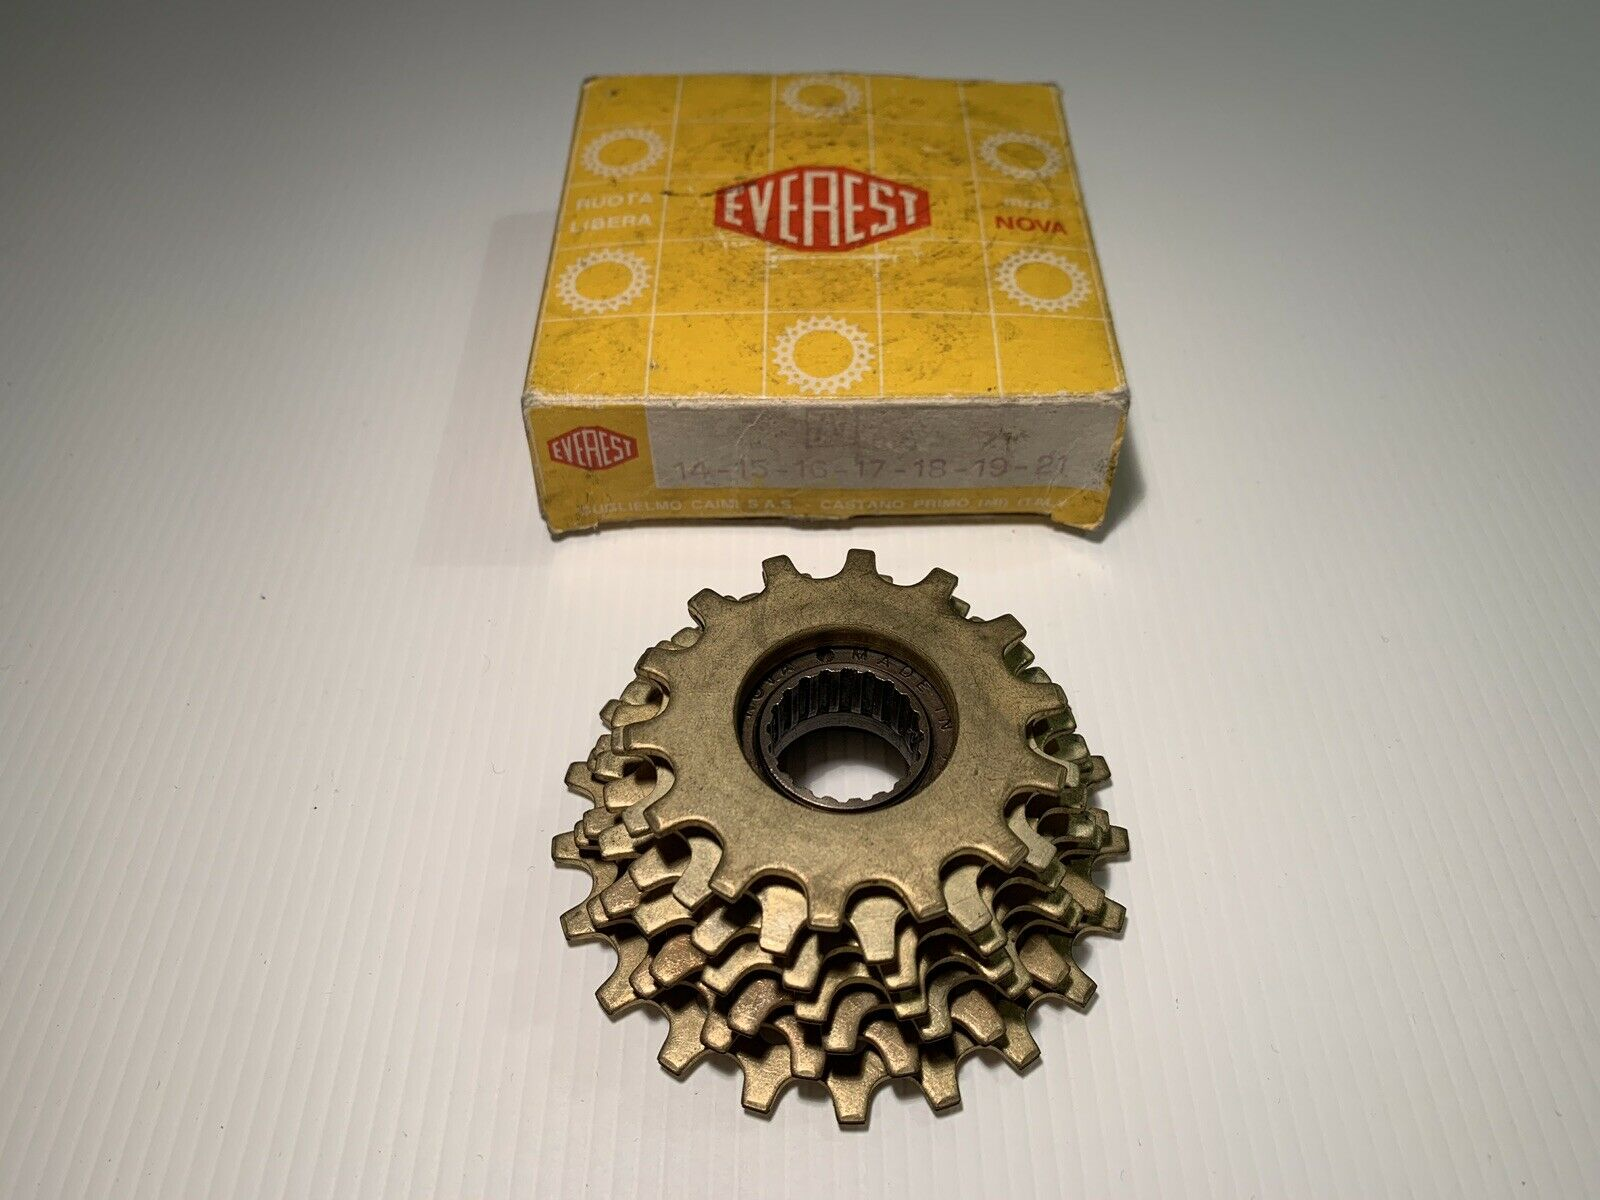 VINTAGE NOS EVEREST MOD NOVA Gold 7v FREEWHEEL 14-21 STEEL VINTAGE BIKE COLNAGO